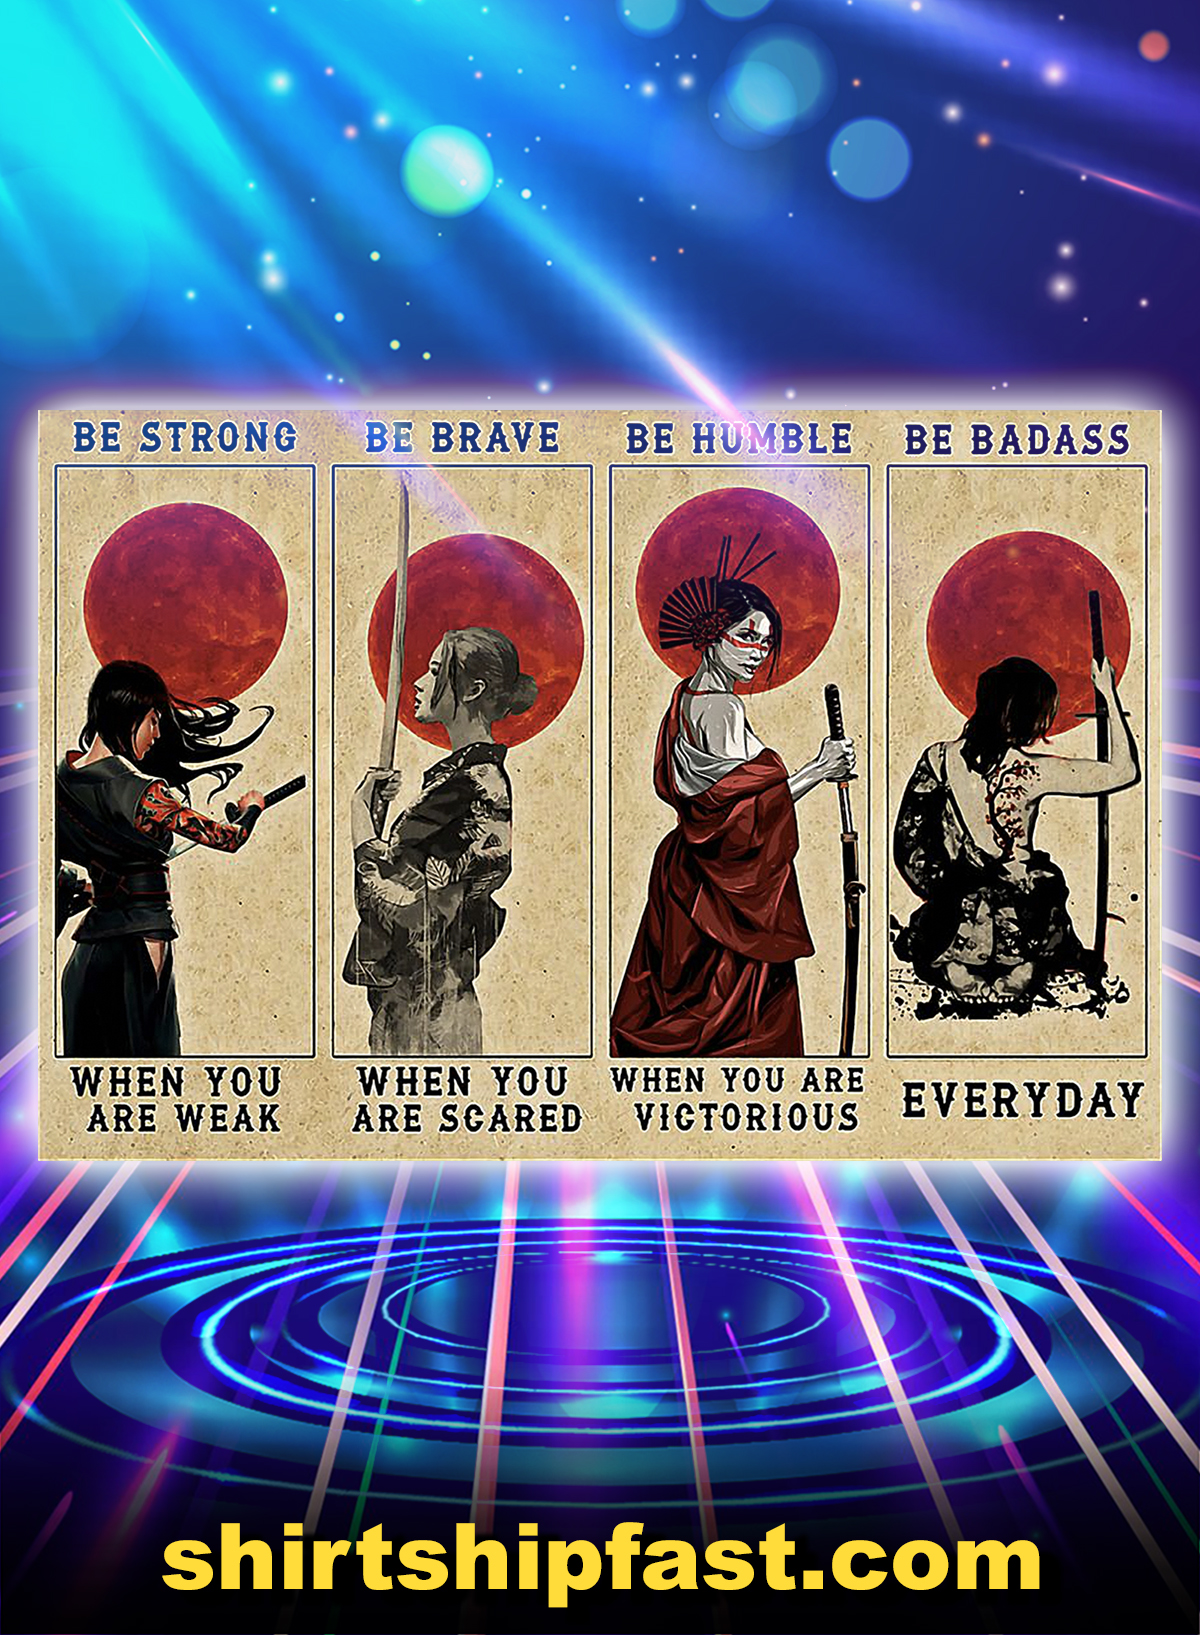 Samurai girl be strong be brave be humble be badass poster - A4